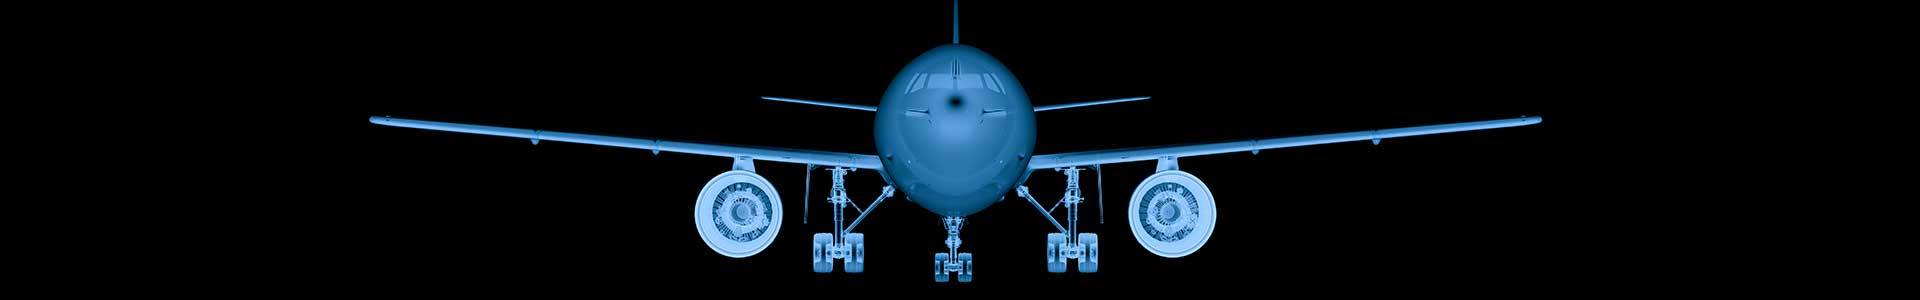 Aerospace NDT, Aircraft NDT, NDT Inspections